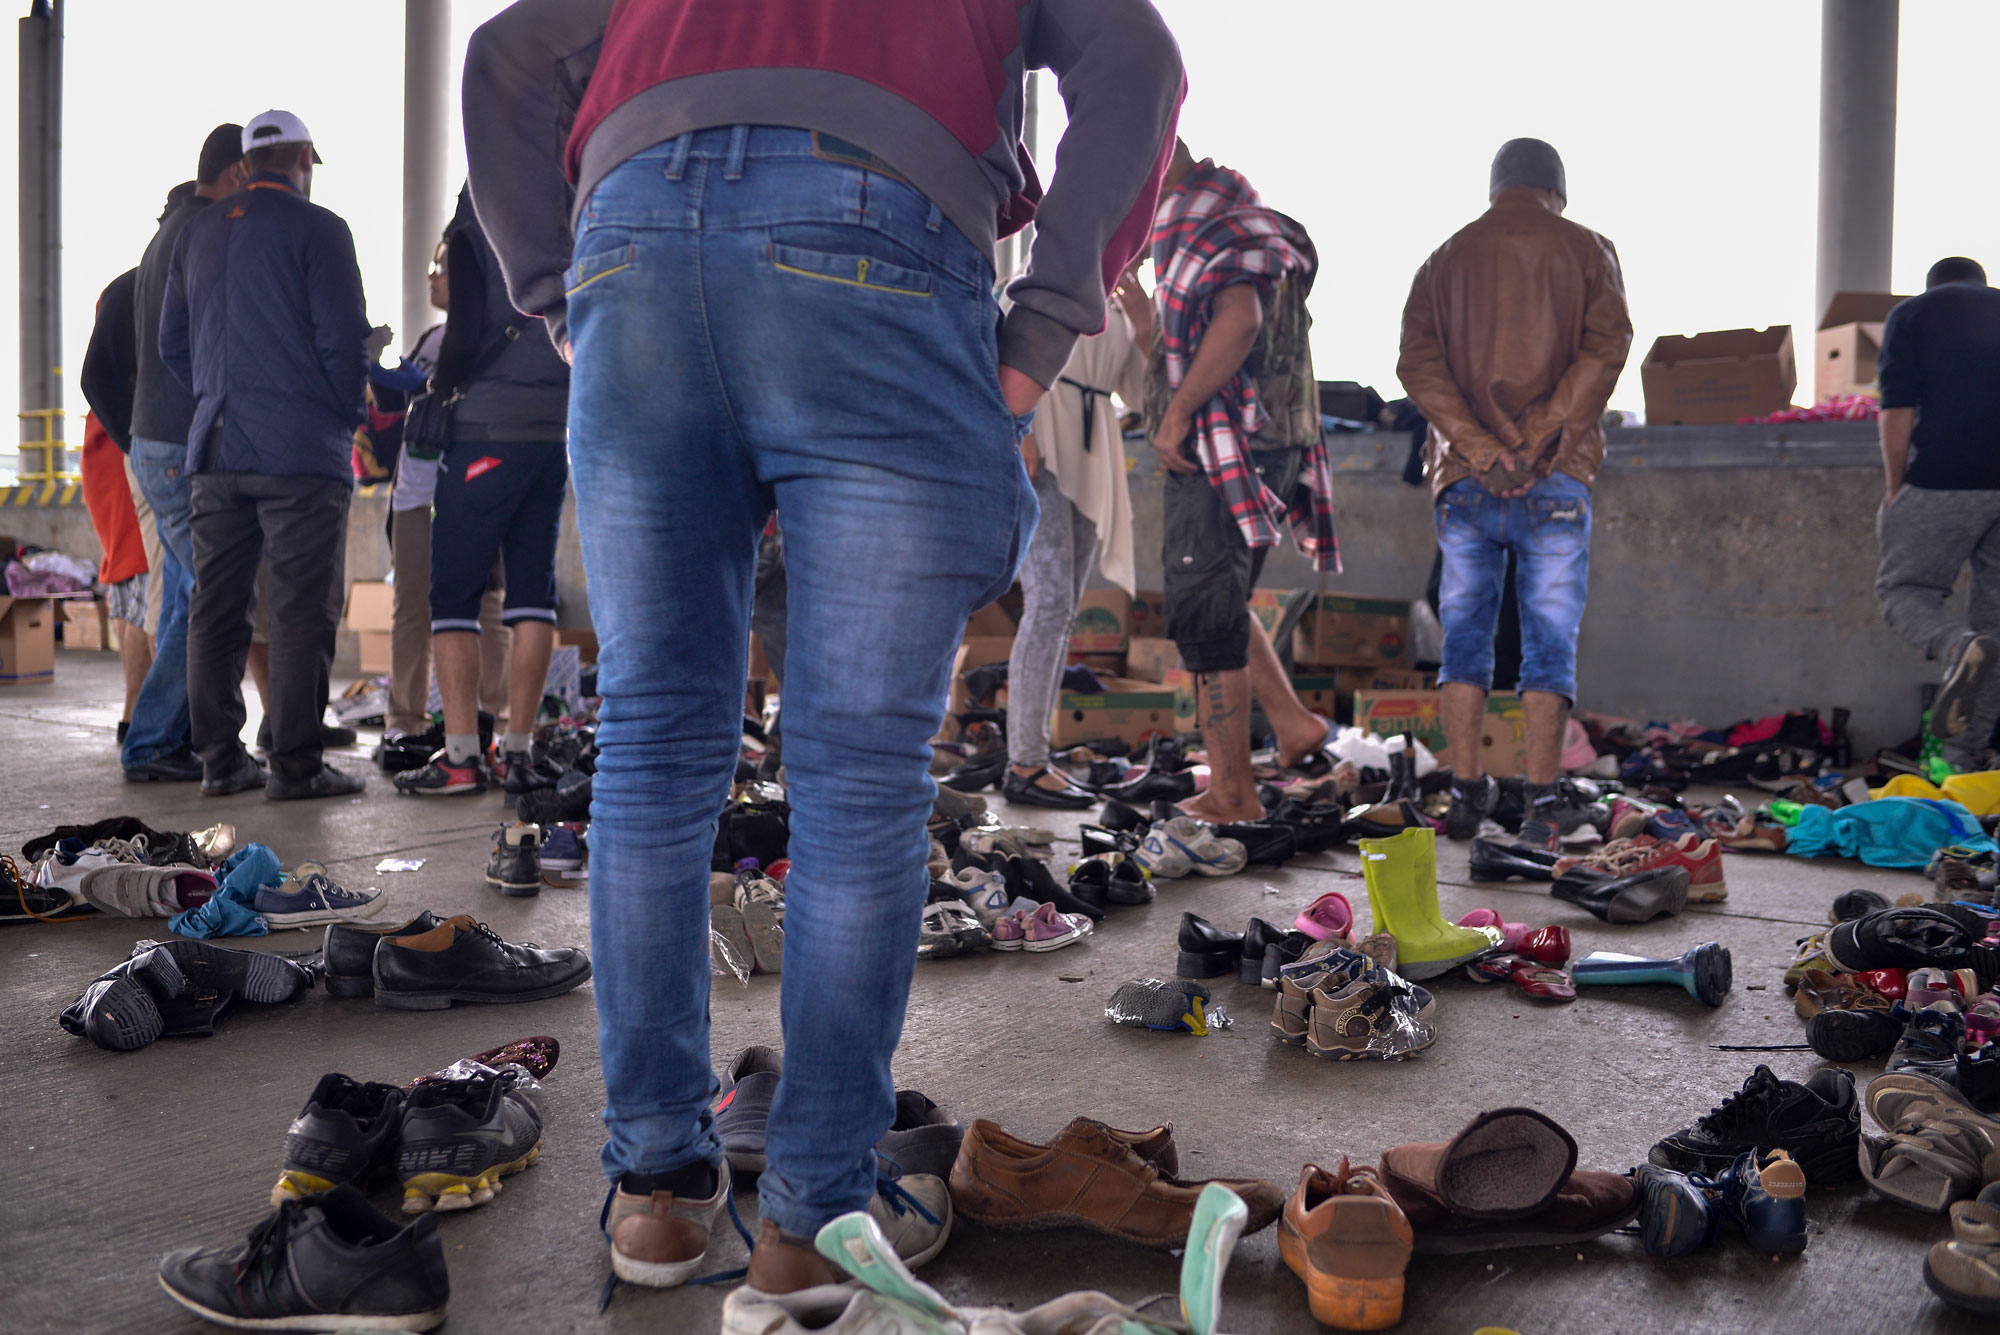 Residents of Vienna, Austria, welcome footsore refugees – many of whom have walked dozens of kilometres shod only in sandals – with donations of shoes to replace their worn-out footwear. UNHCR/Michael Schöppl